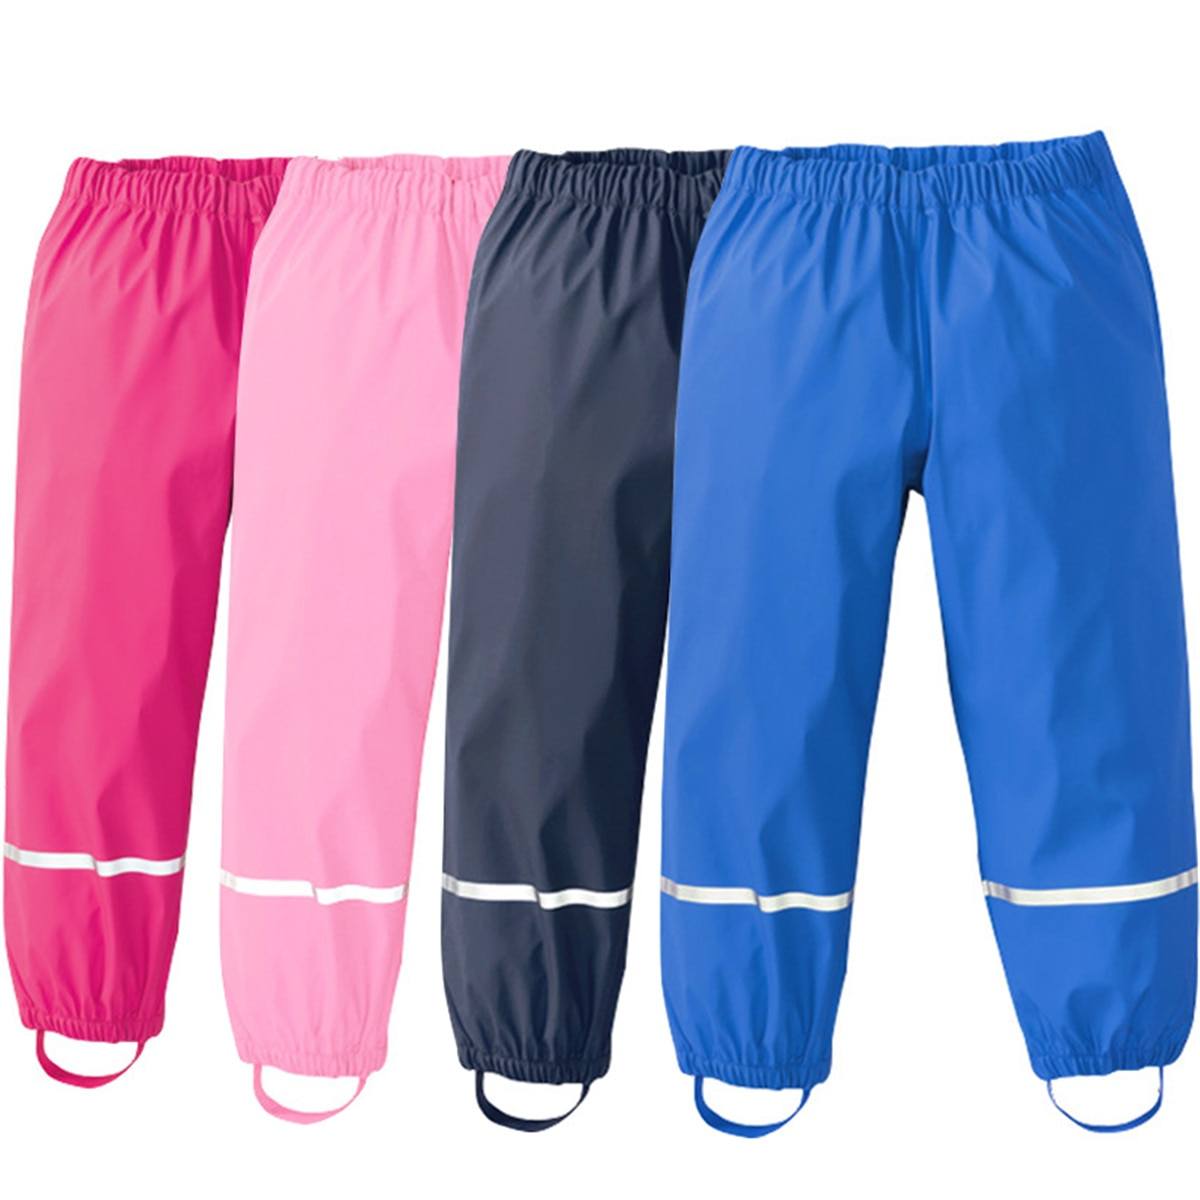 Kids Rain Pants Boys And Girls Baby PU Waterproof Pants Outdoor Windproof Trousers Children Clothes